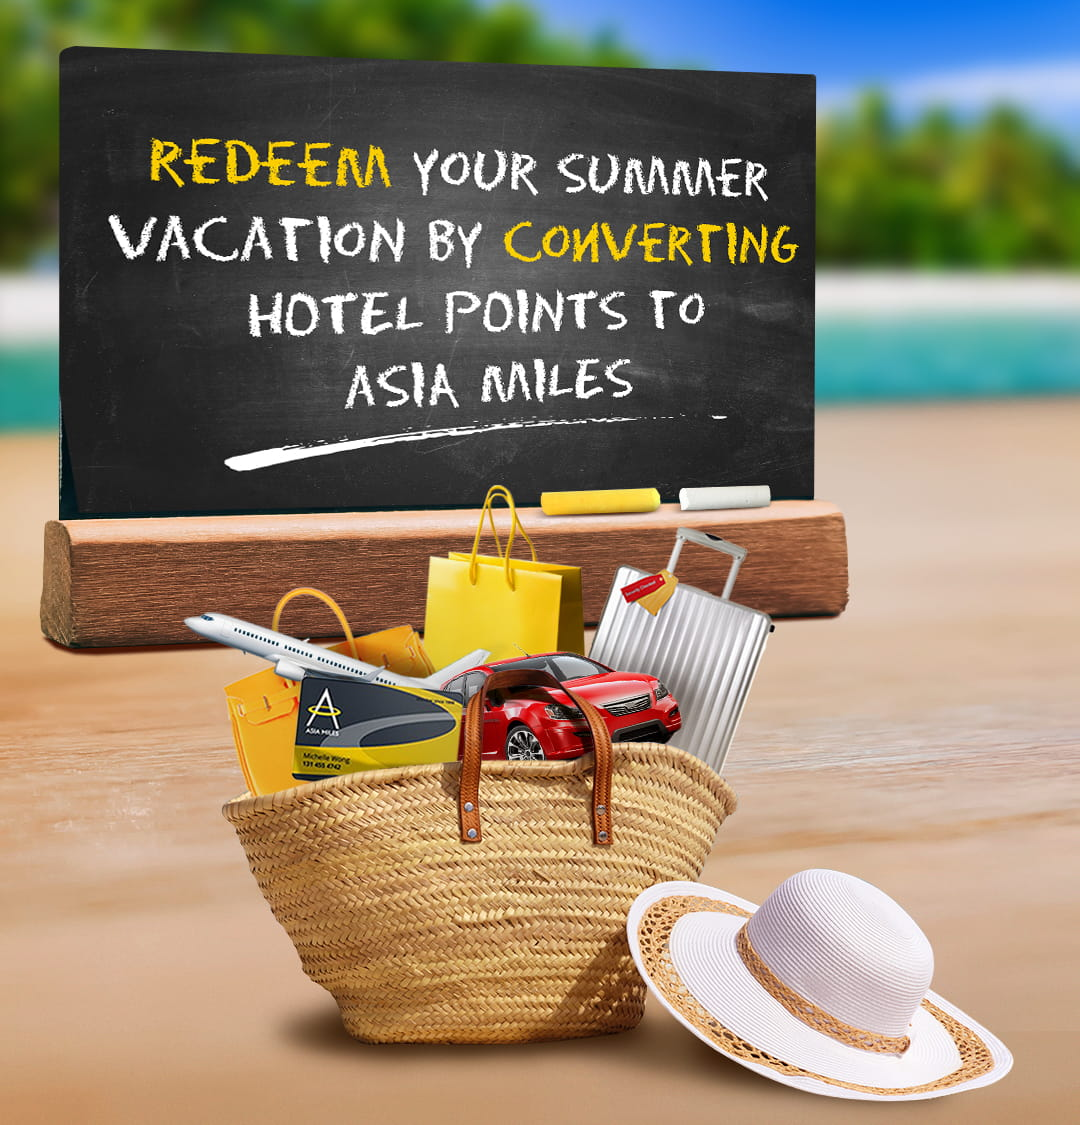 Redeem your summer vacation by converting hotel points to Asia Miles